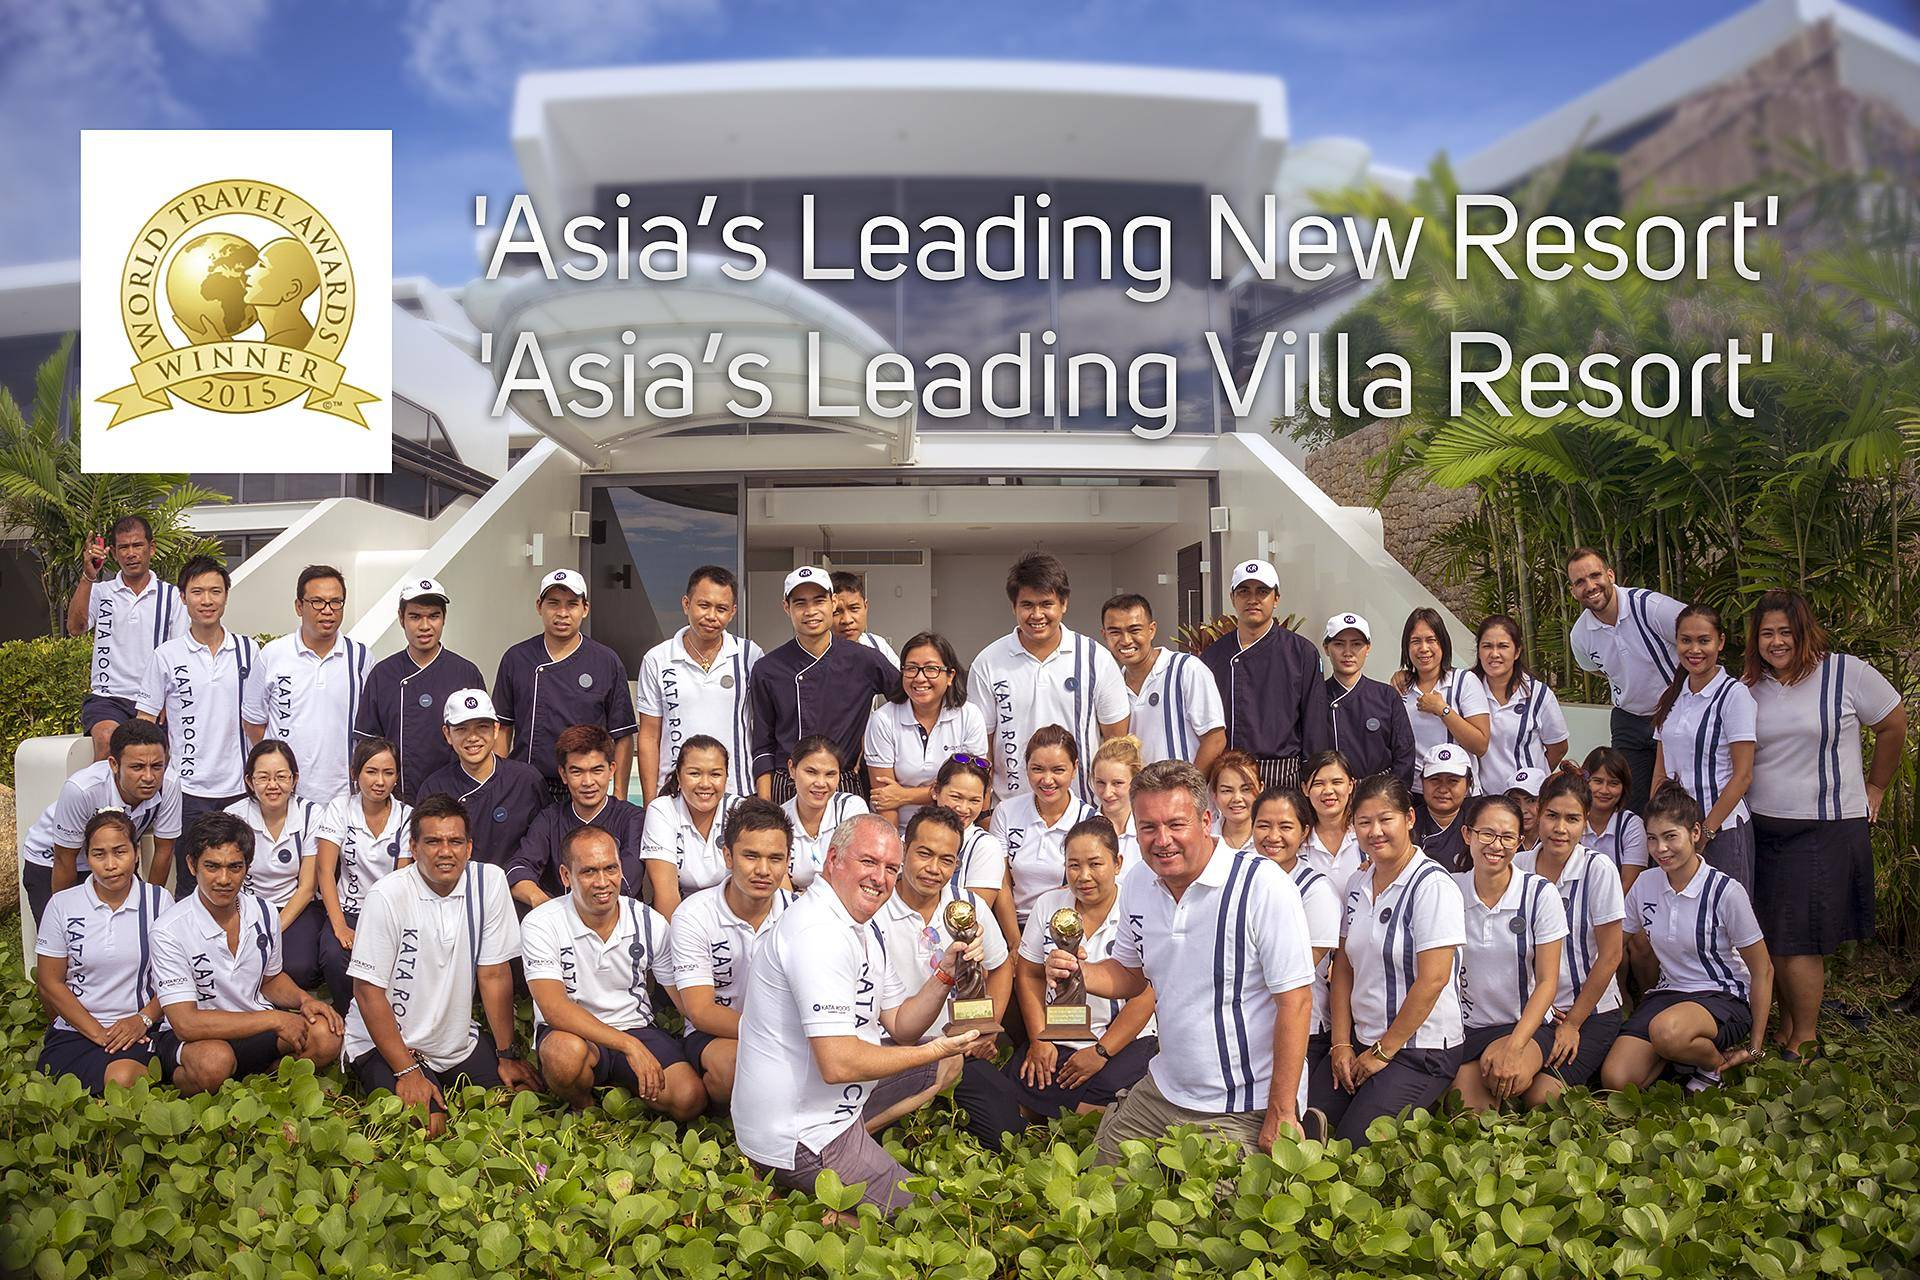 Kata Rocks Wins 'Asia's Leading New Resort' Award at WTA in Hong Kong - Asia's Leading New Resort Award